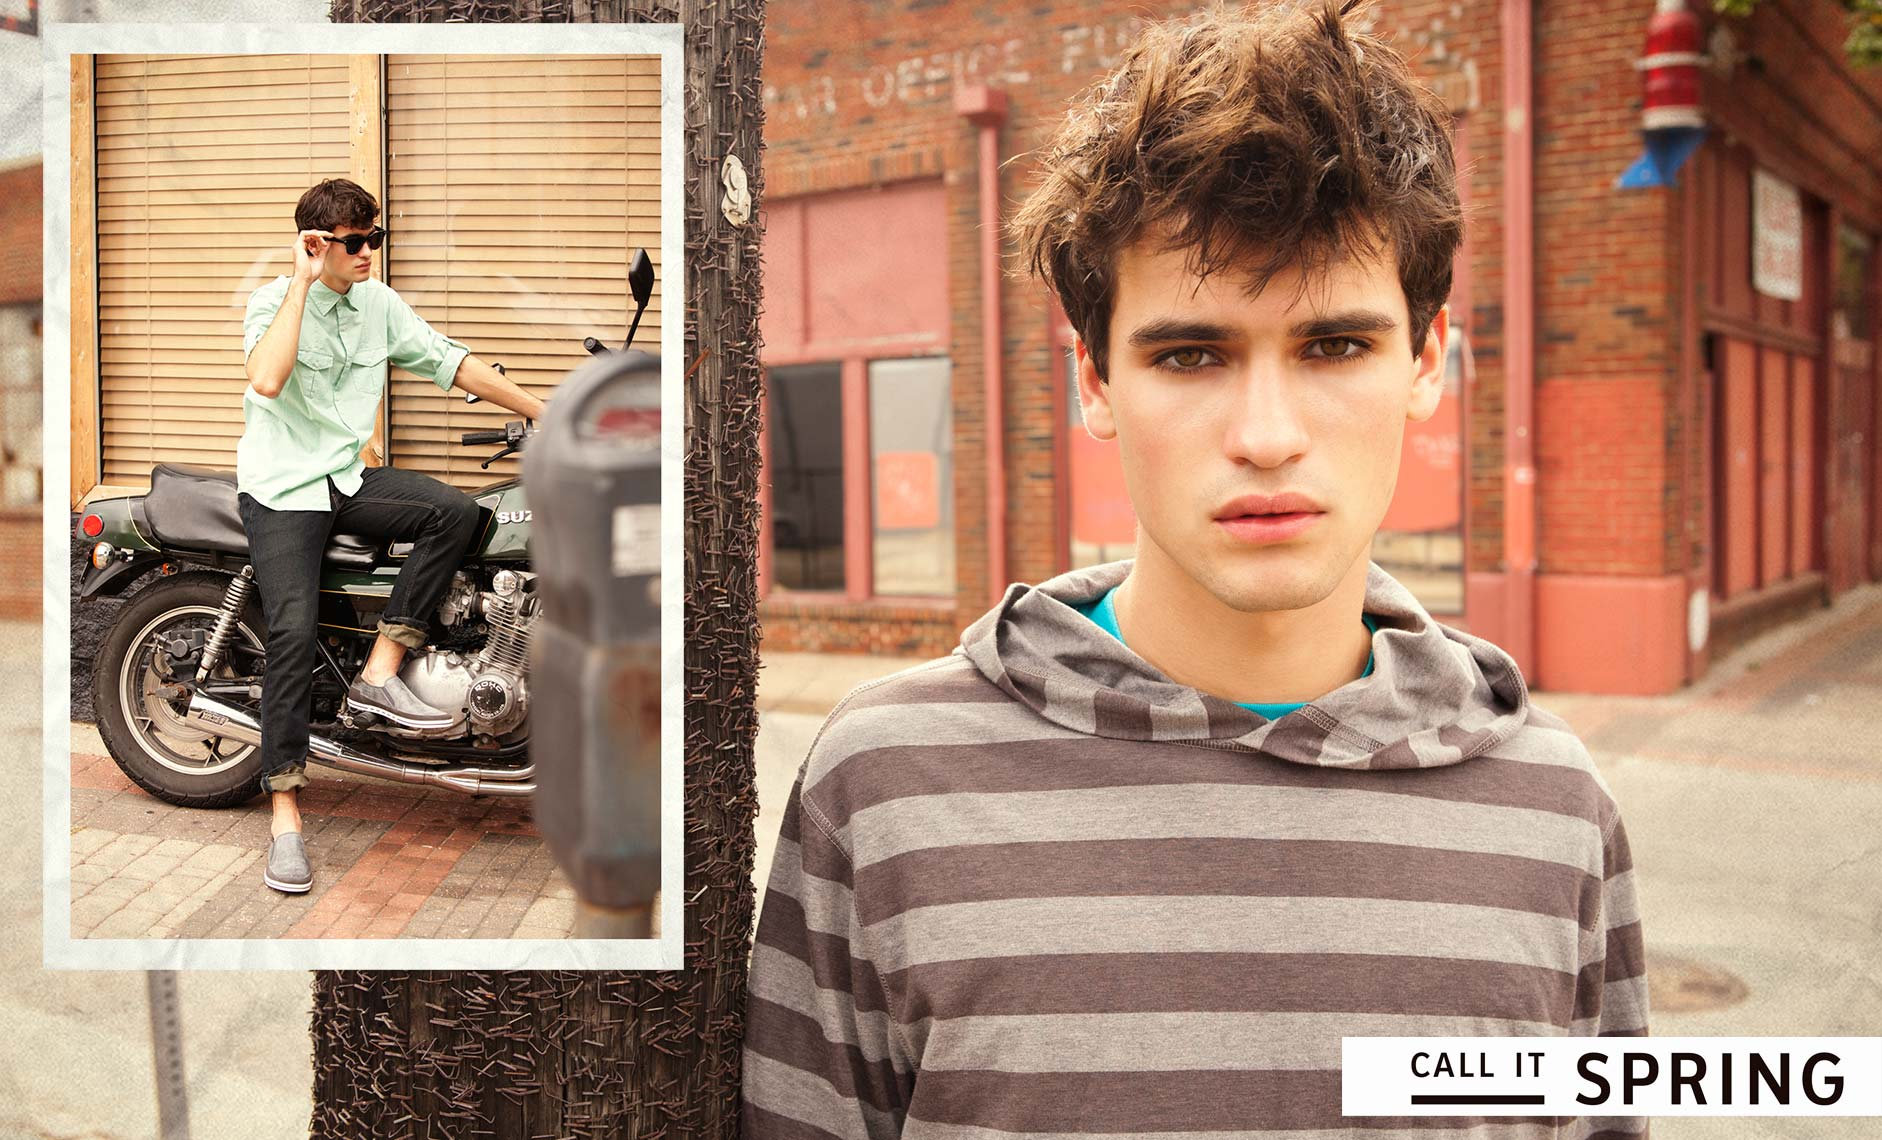 CHRIS-HUNT-FASHION-PHOTOGRAPHY-ADVERTISING-ALDO-CALL-IT-SPRING0469